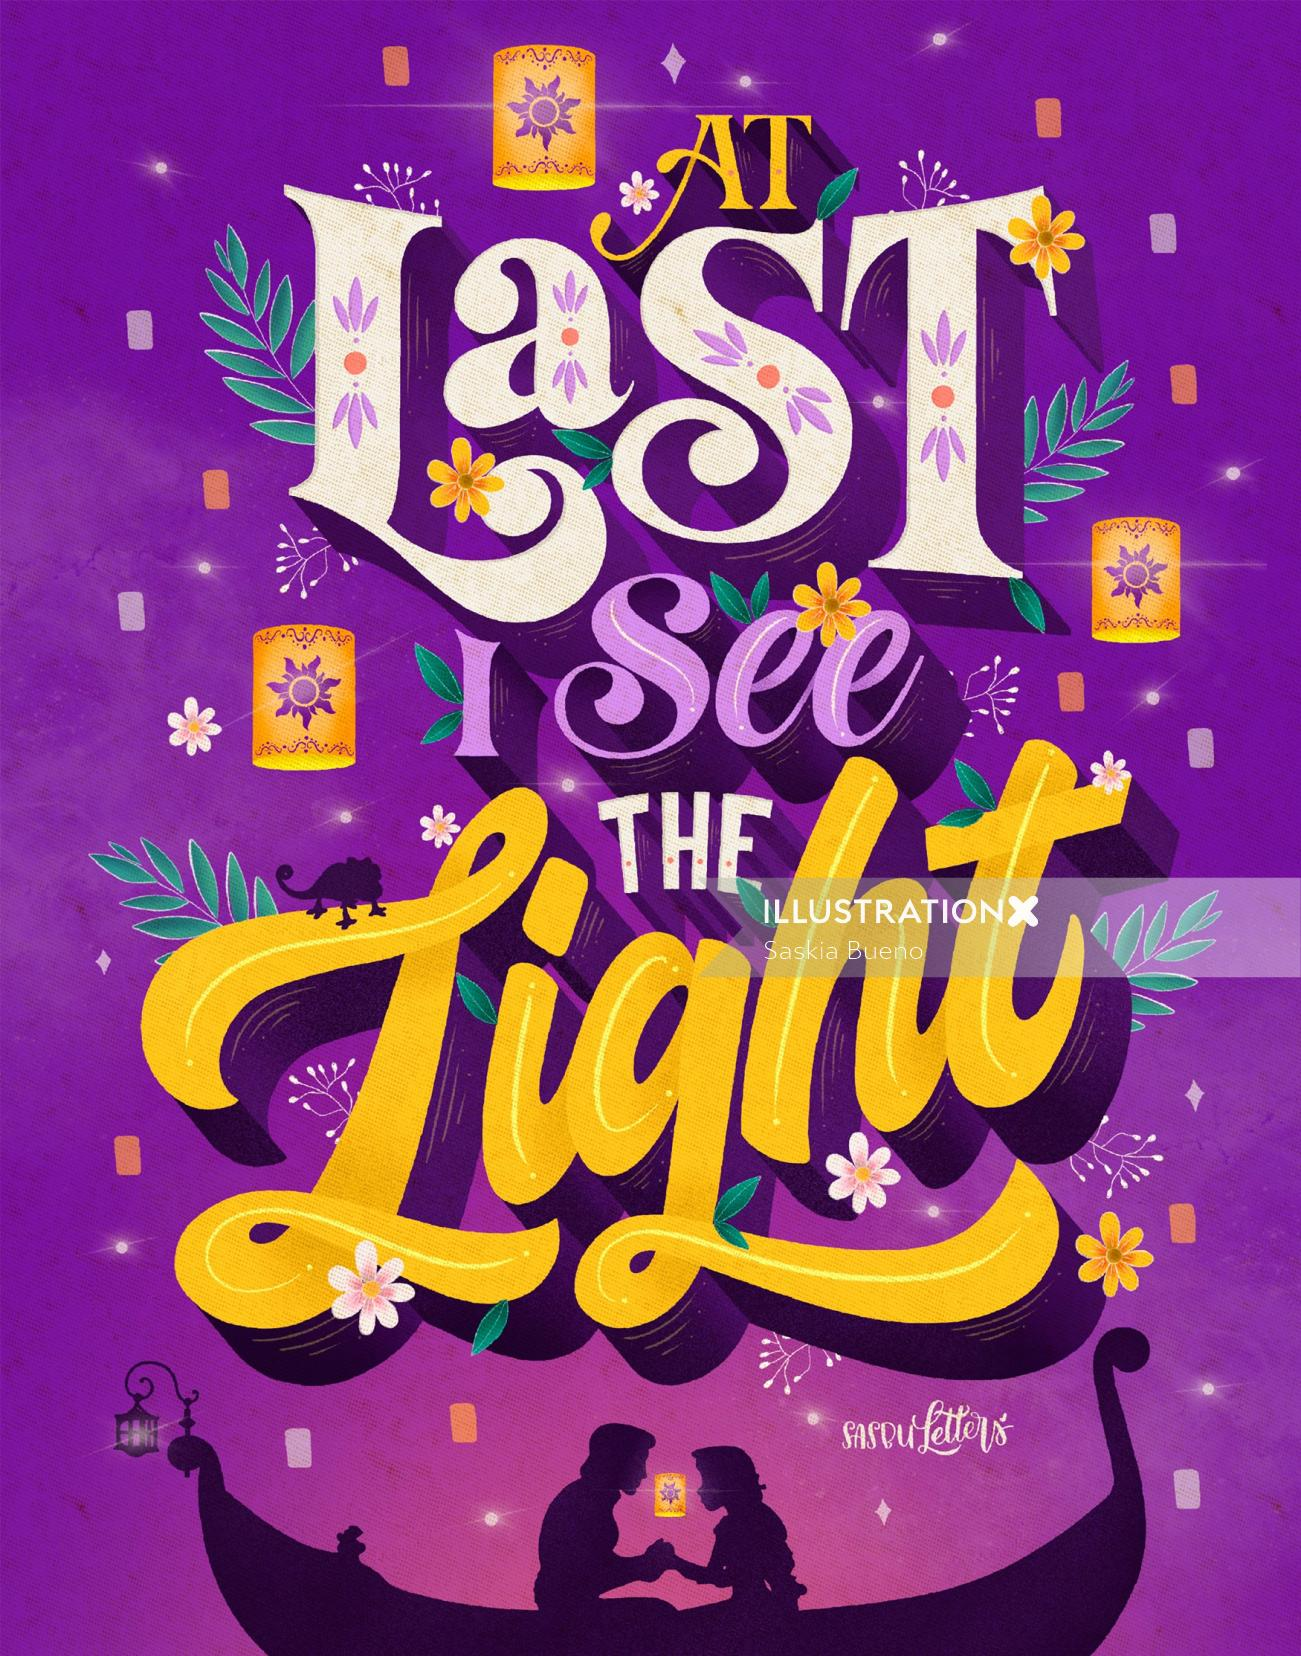 Lettering illustration of At Last I See The Light